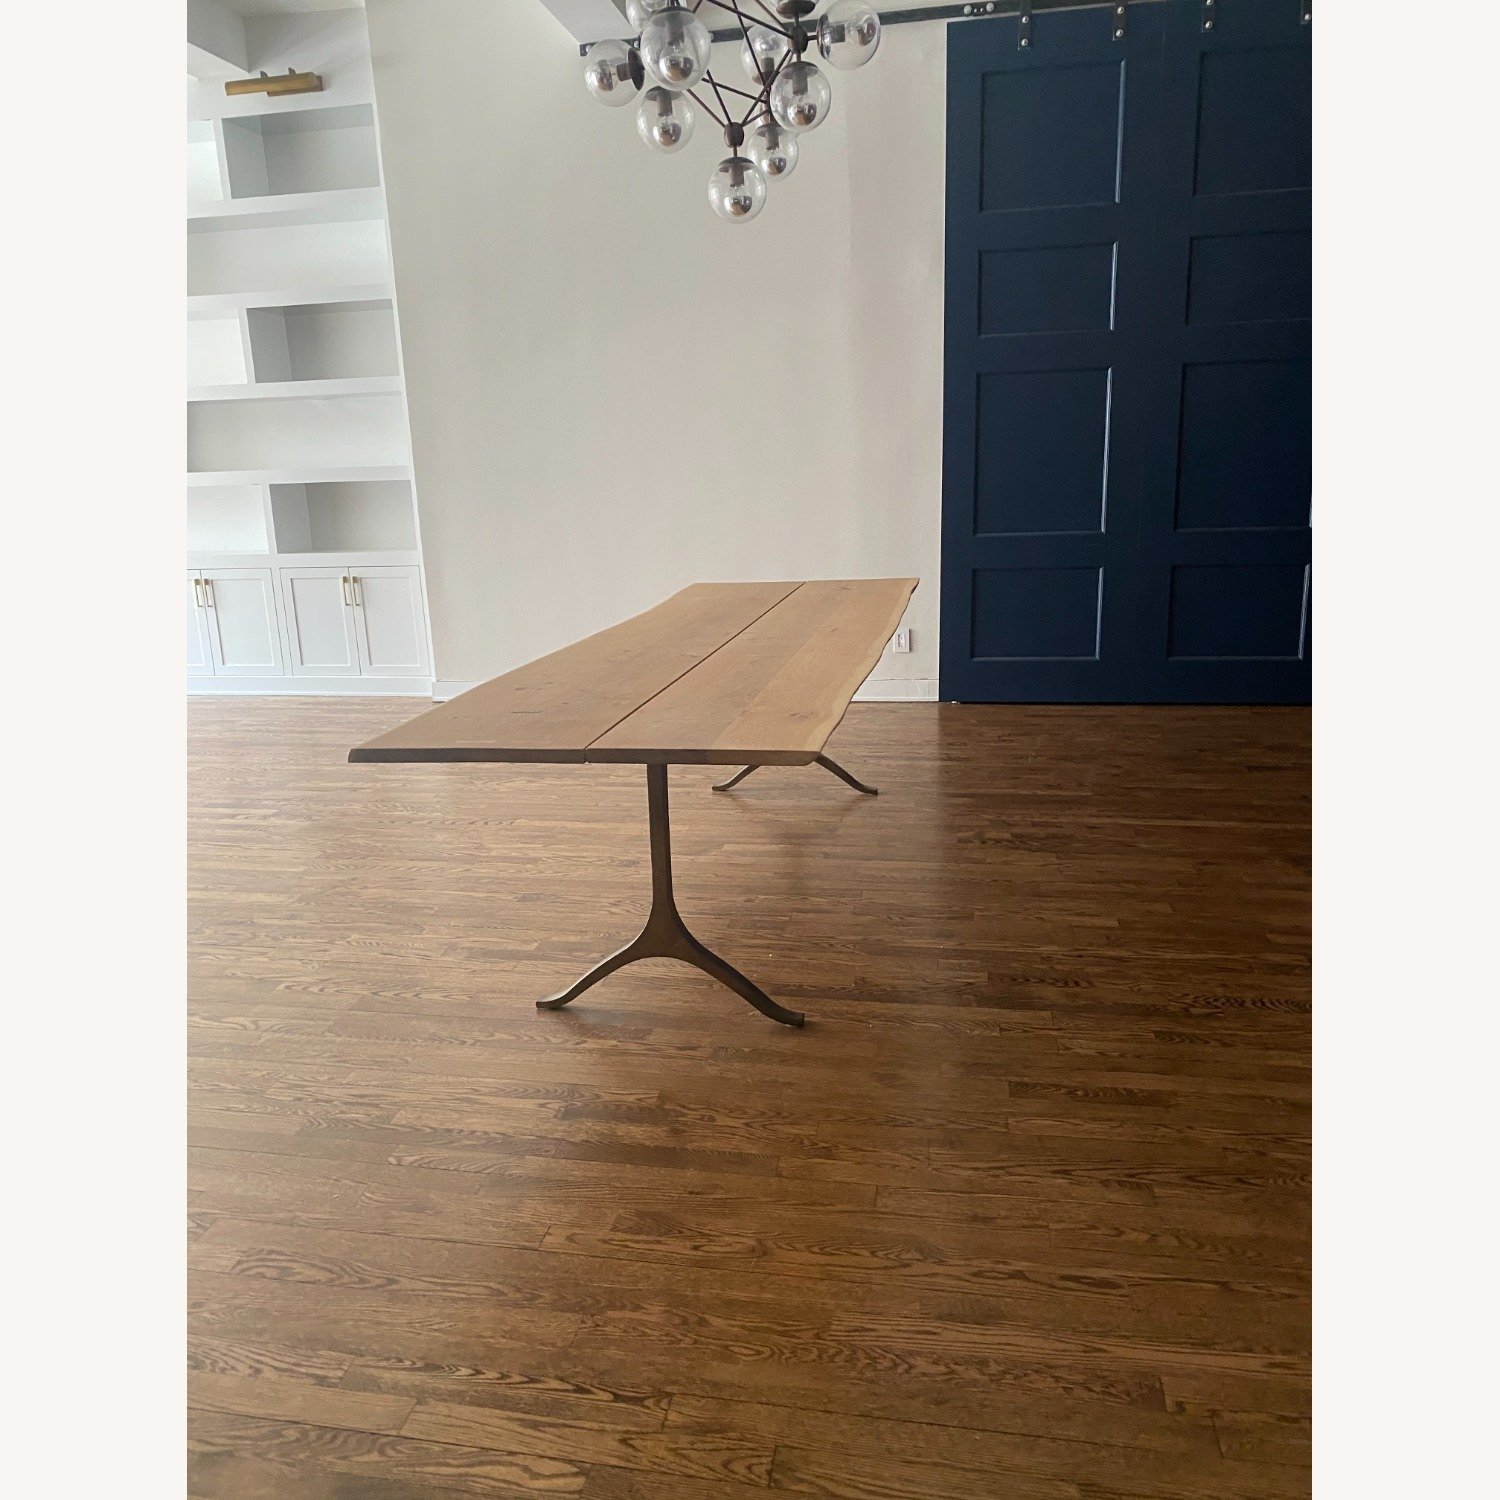 Anthropologie Oak and Brass Live Edge Dining Table - image-2